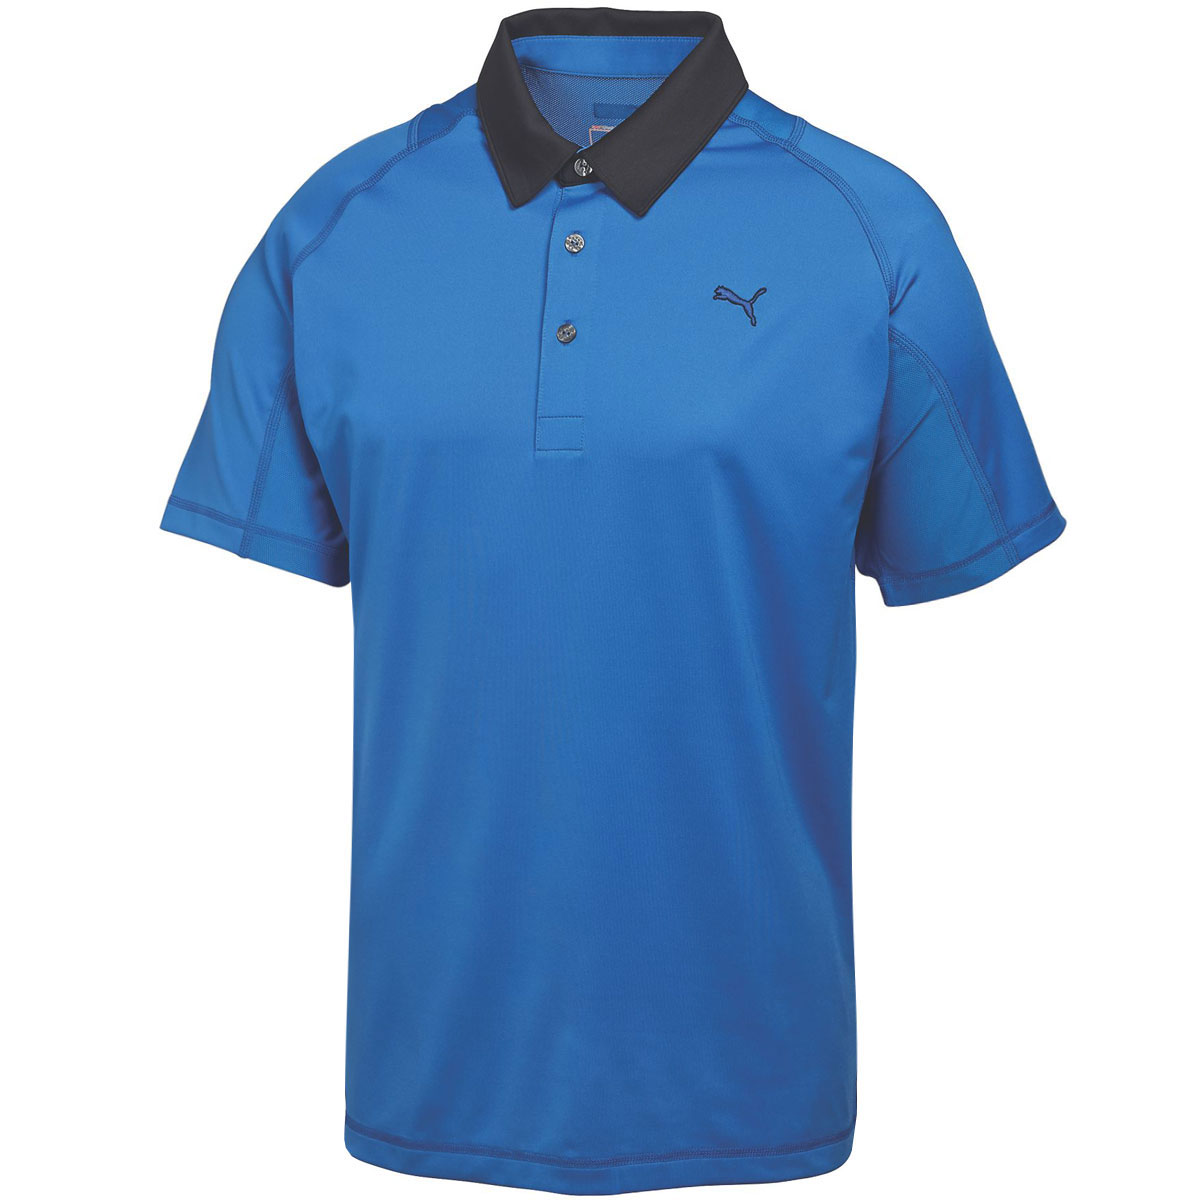 Puma golf mens titan tour golf polo shirt 568252 coolcell for Mens puma golf shirts